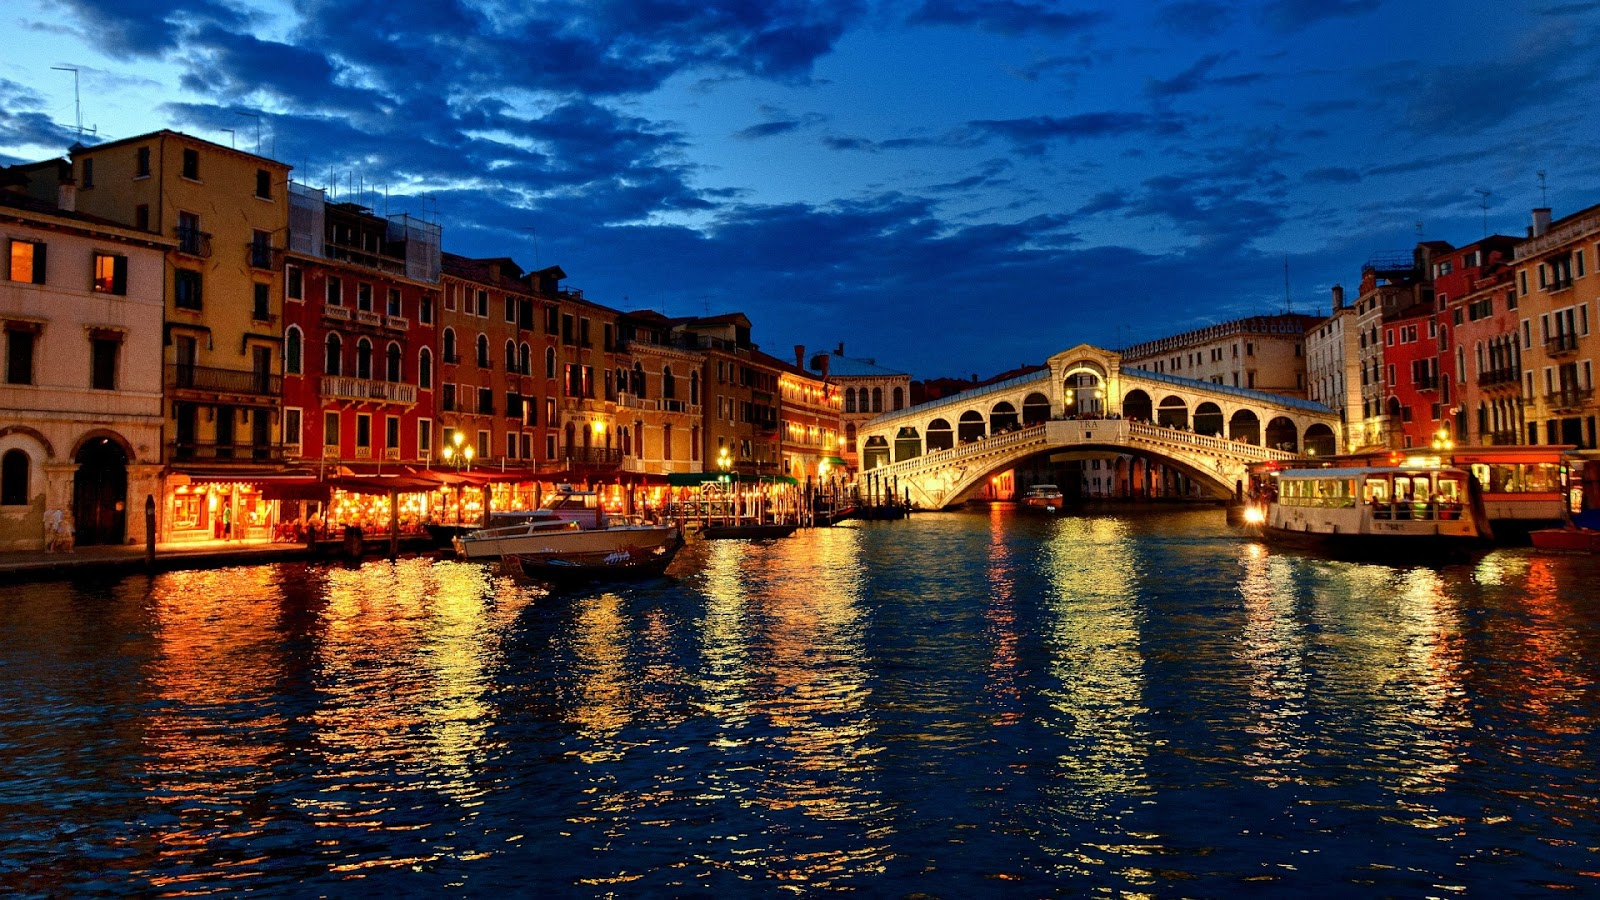 Grand Canal Venice Night Venice at Night Grand Canal